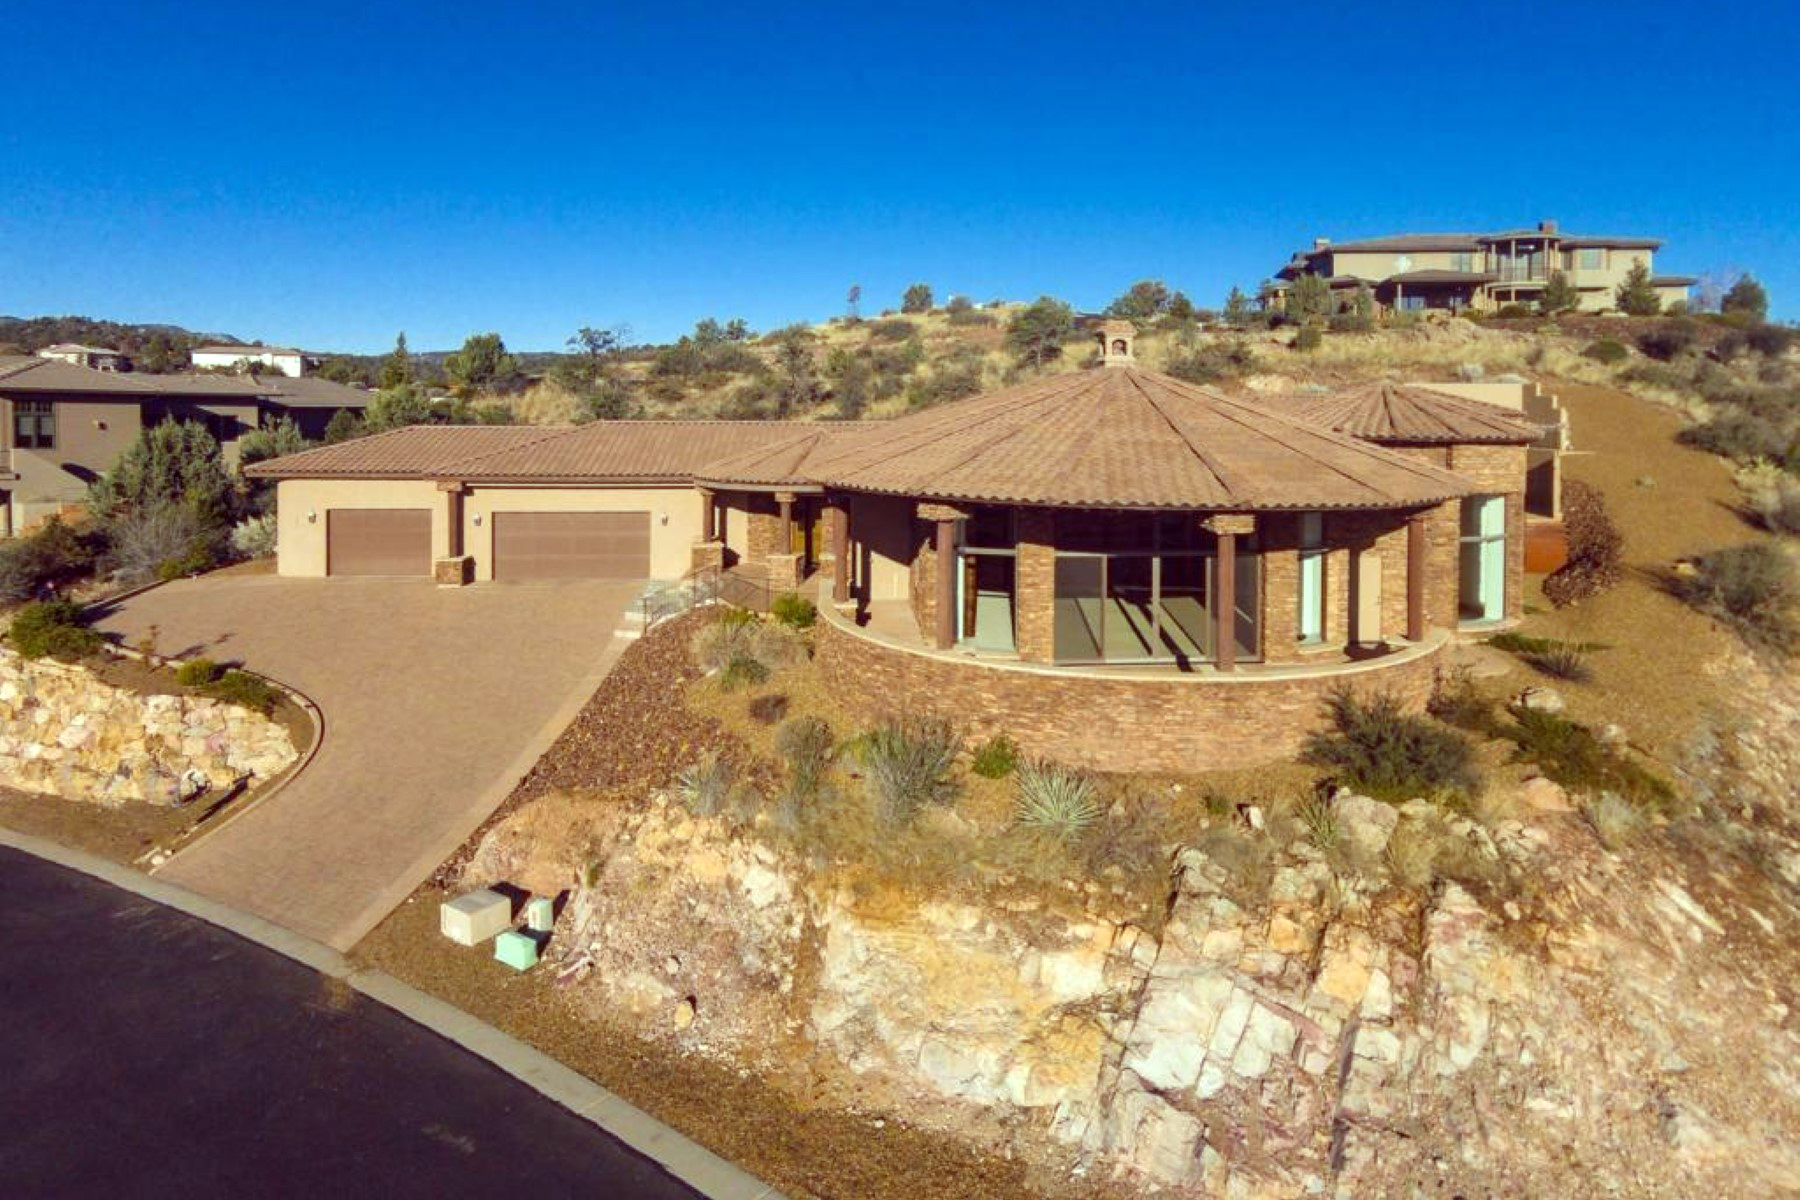 Single Family Home for Sale at Custom Prescott Home With Dramatic 180+ Degree Views 1434 Tallside Prescott, Arizona 86305 United States